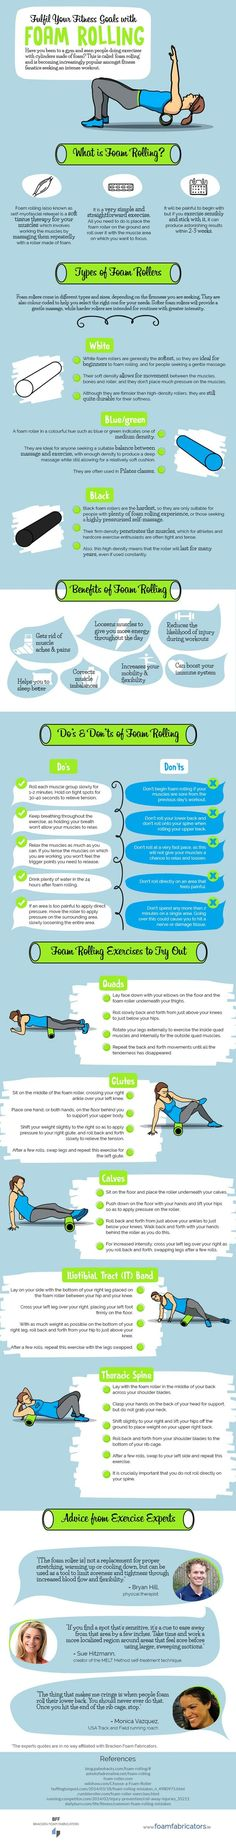 What you need to know about foam rolling! from the Fit Bottomed Girls